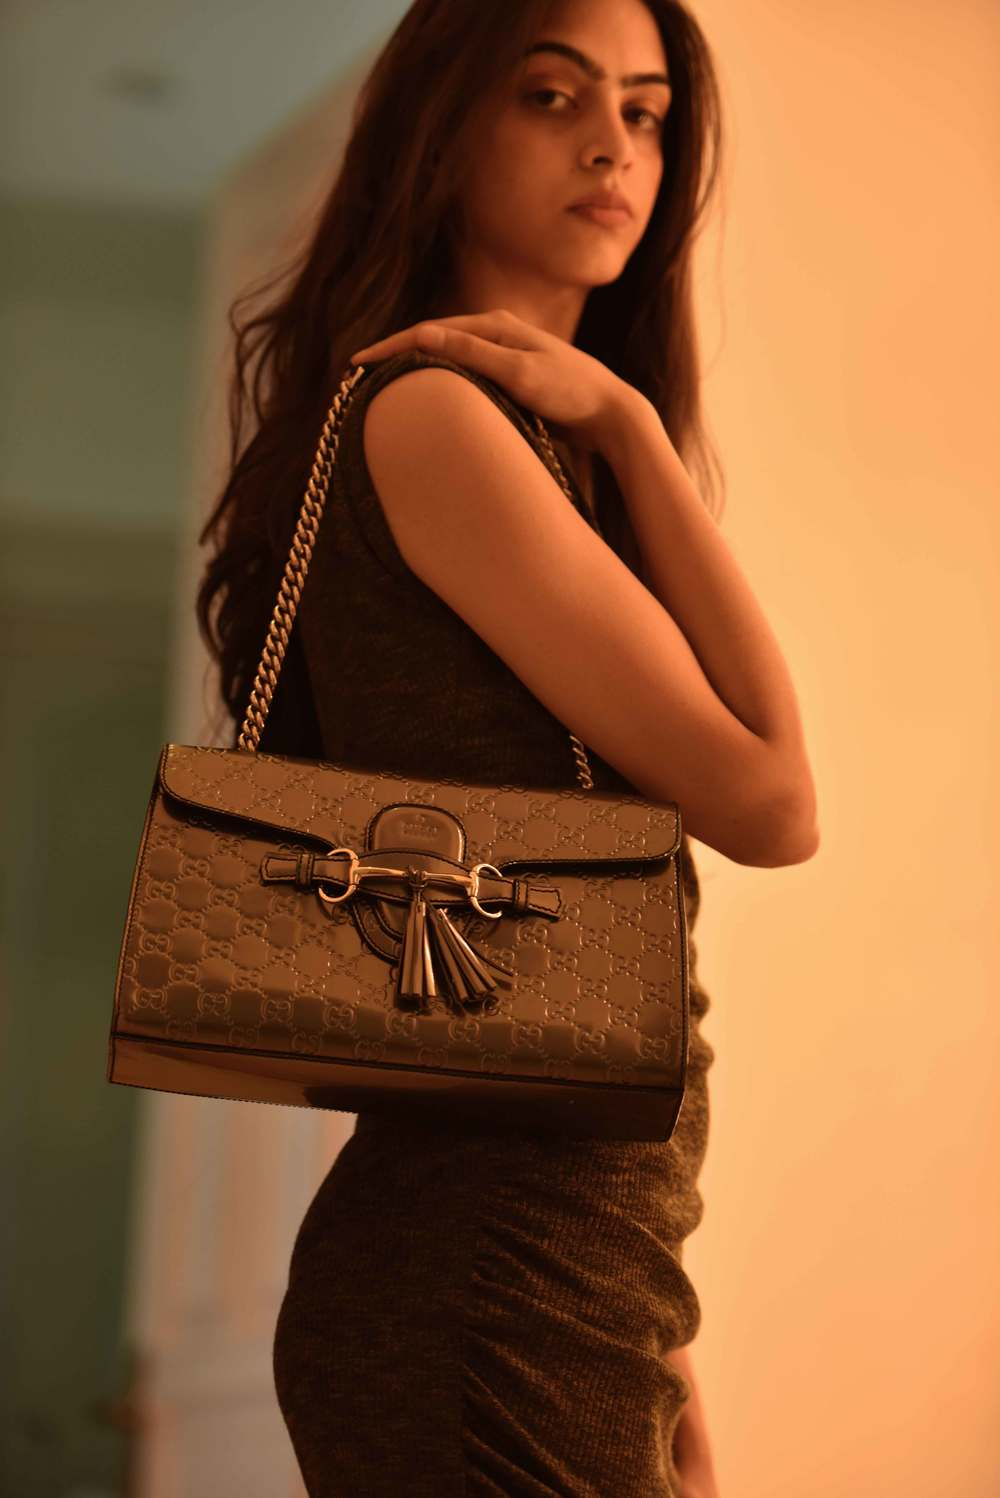 A formal evening Gucci bag, image©gunjanvirk, model: Mannat Dhaliwal